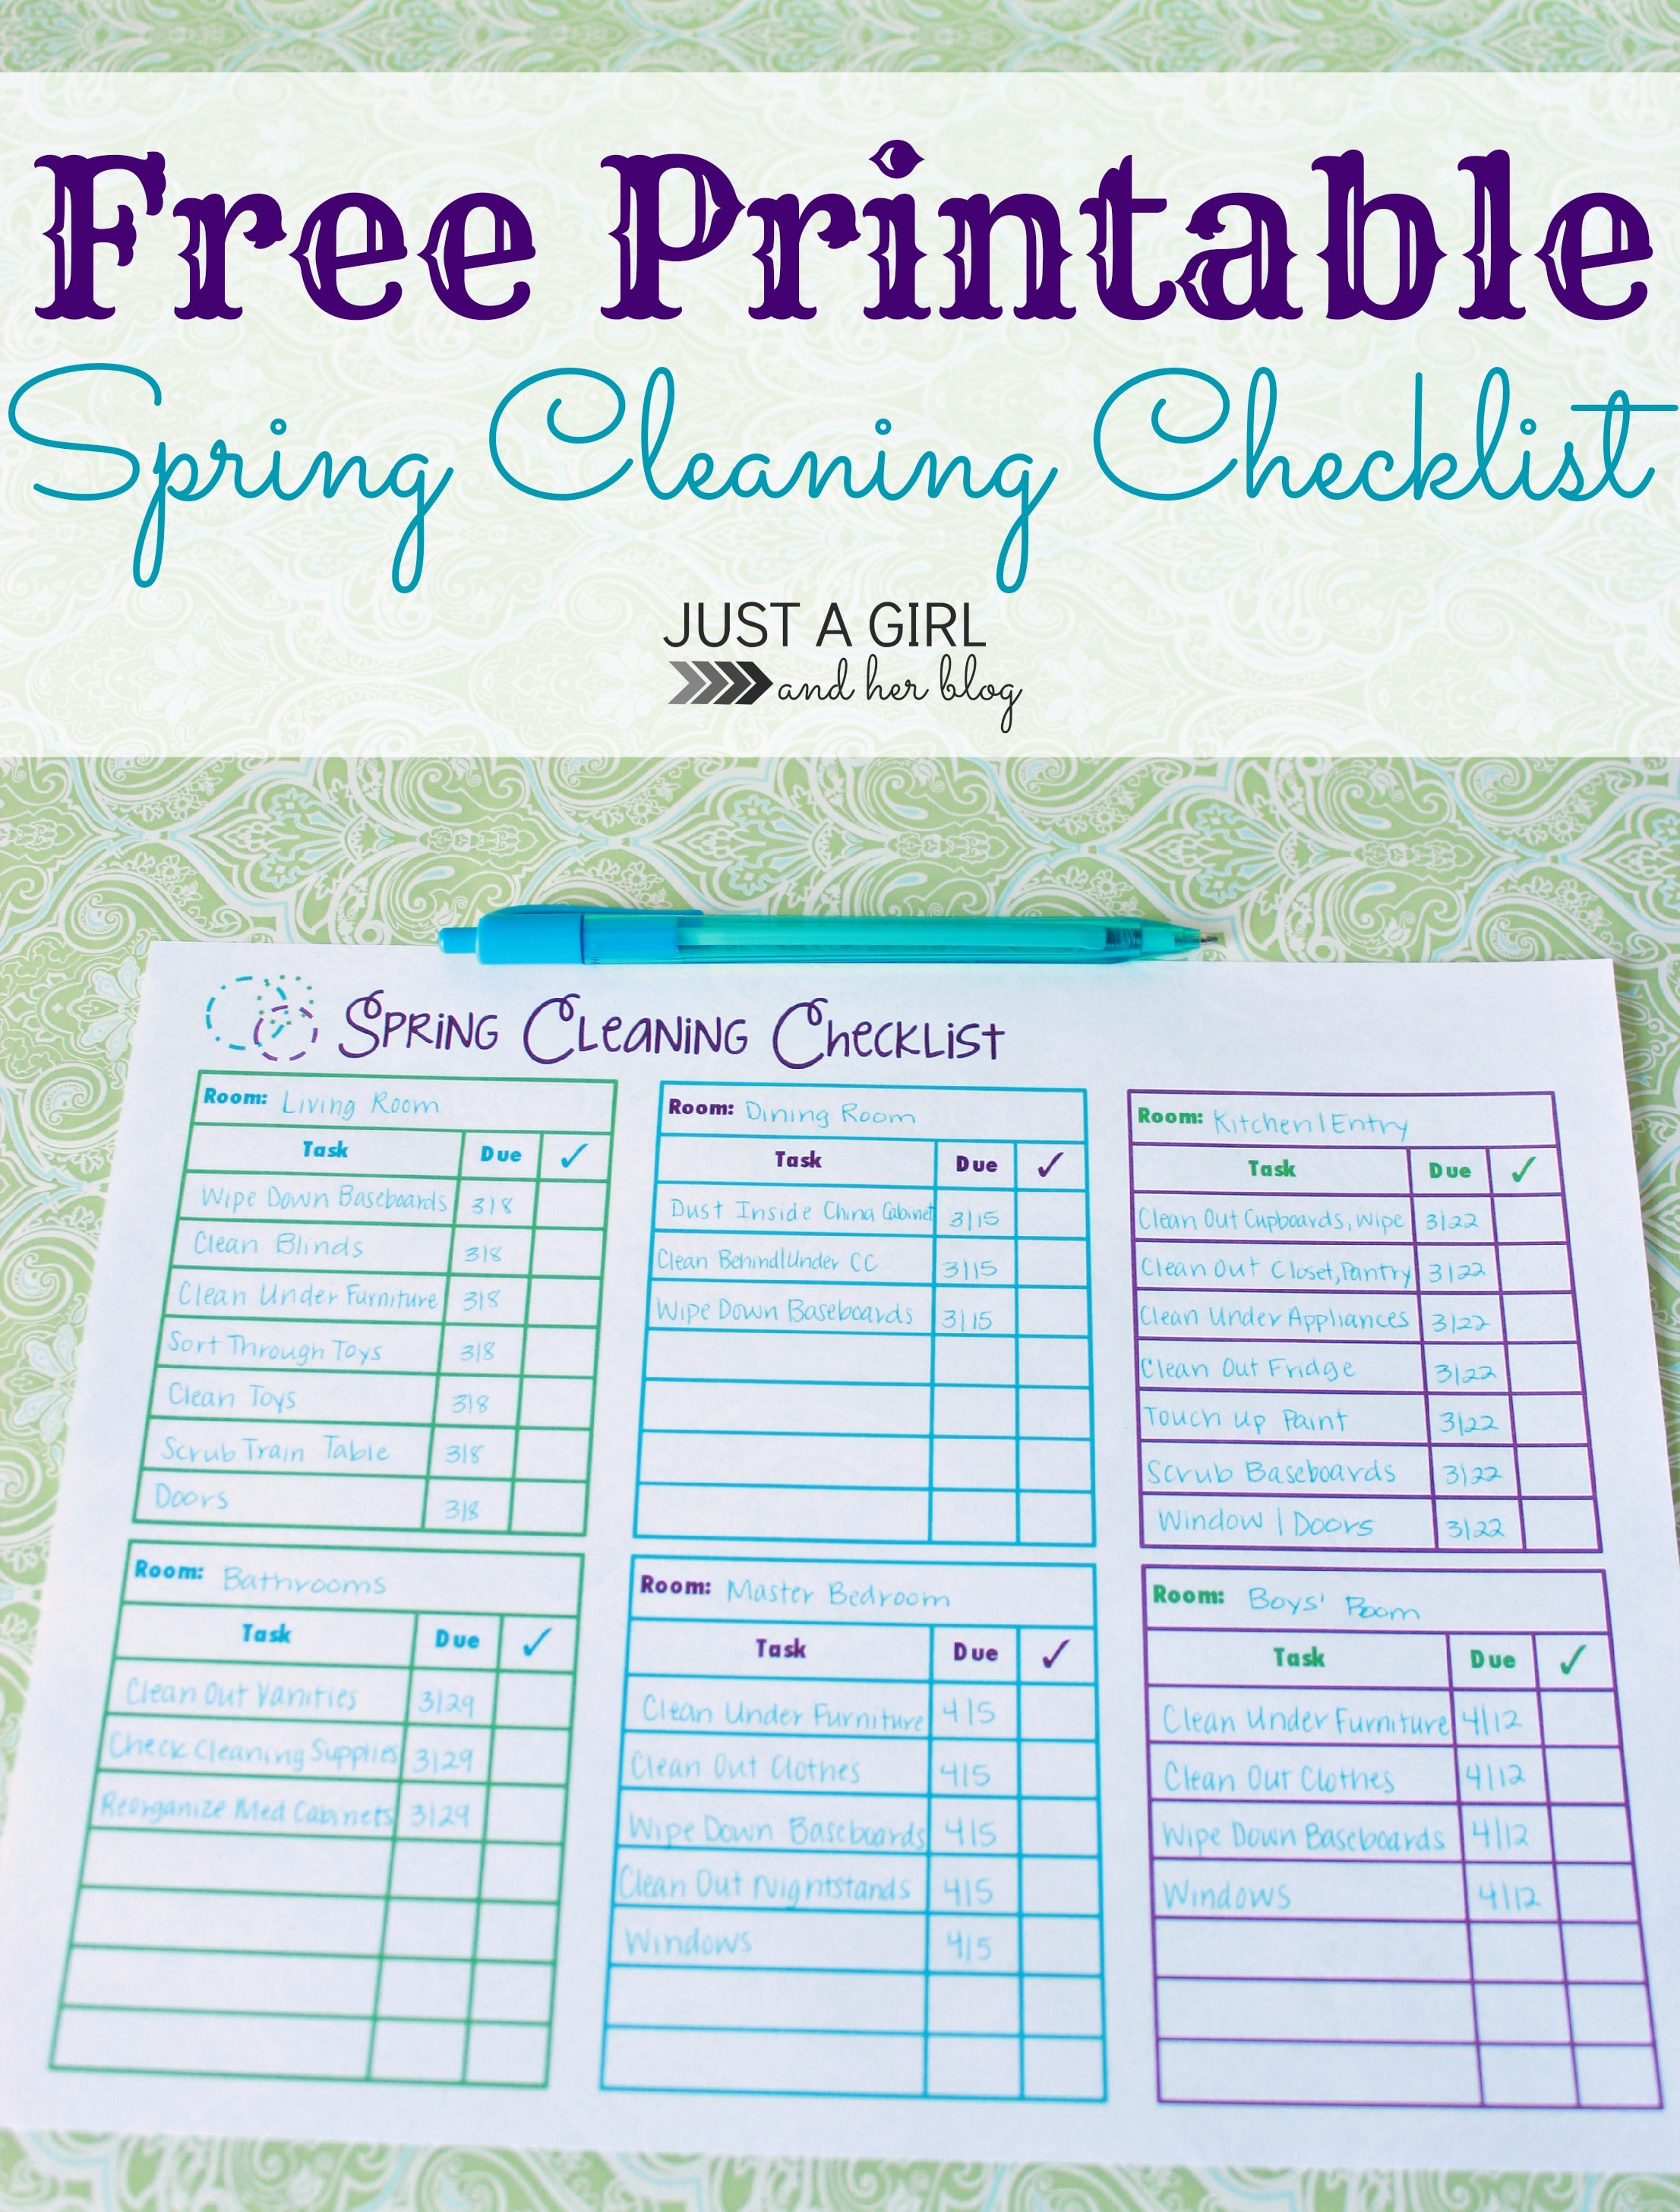 Spring Cleaning Checklist spring cleaning checklist - free printable - mom 4 real